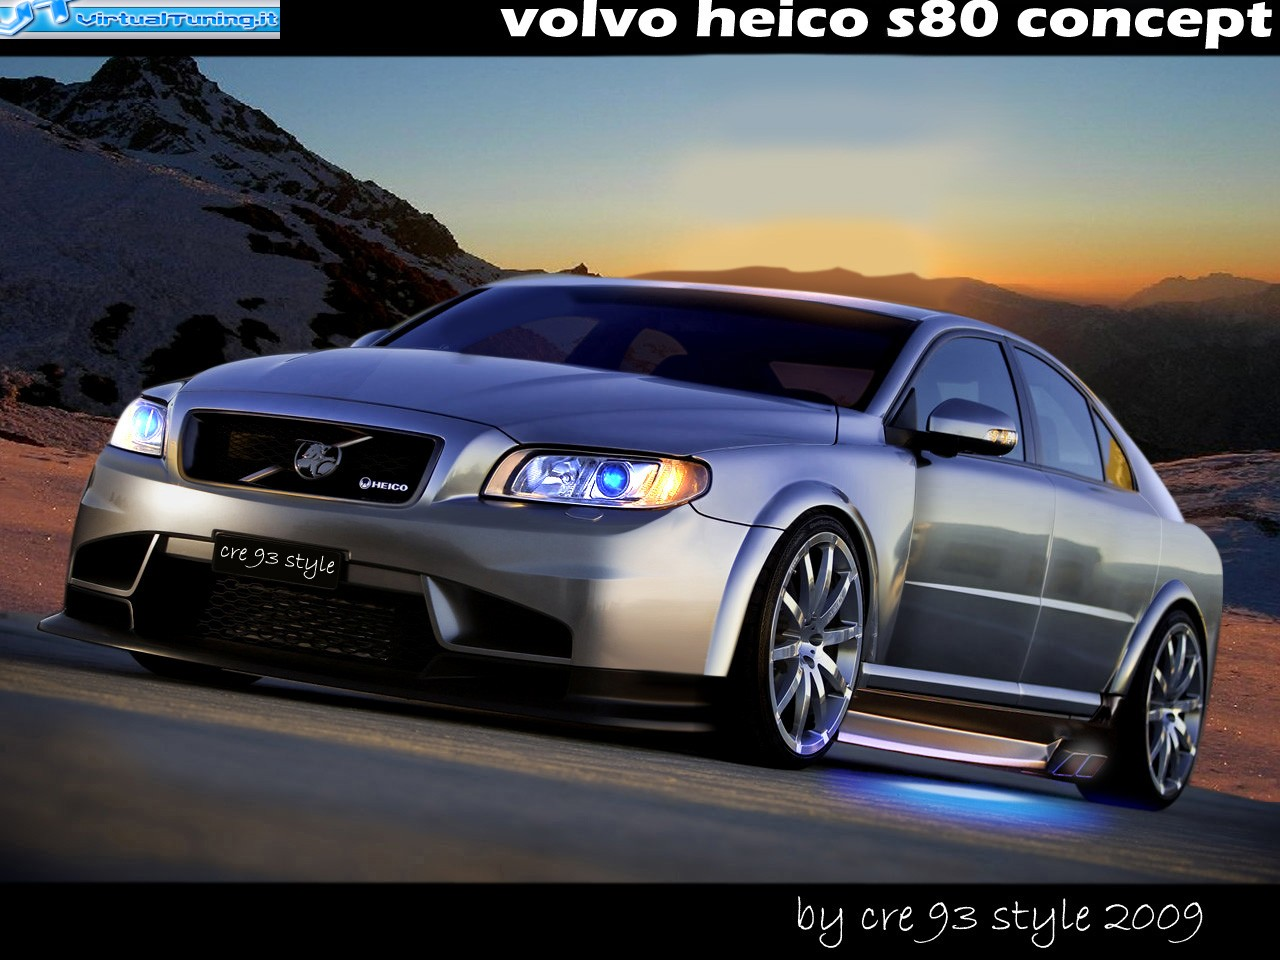 VirtualTuning VOLVO S80 HEICO by